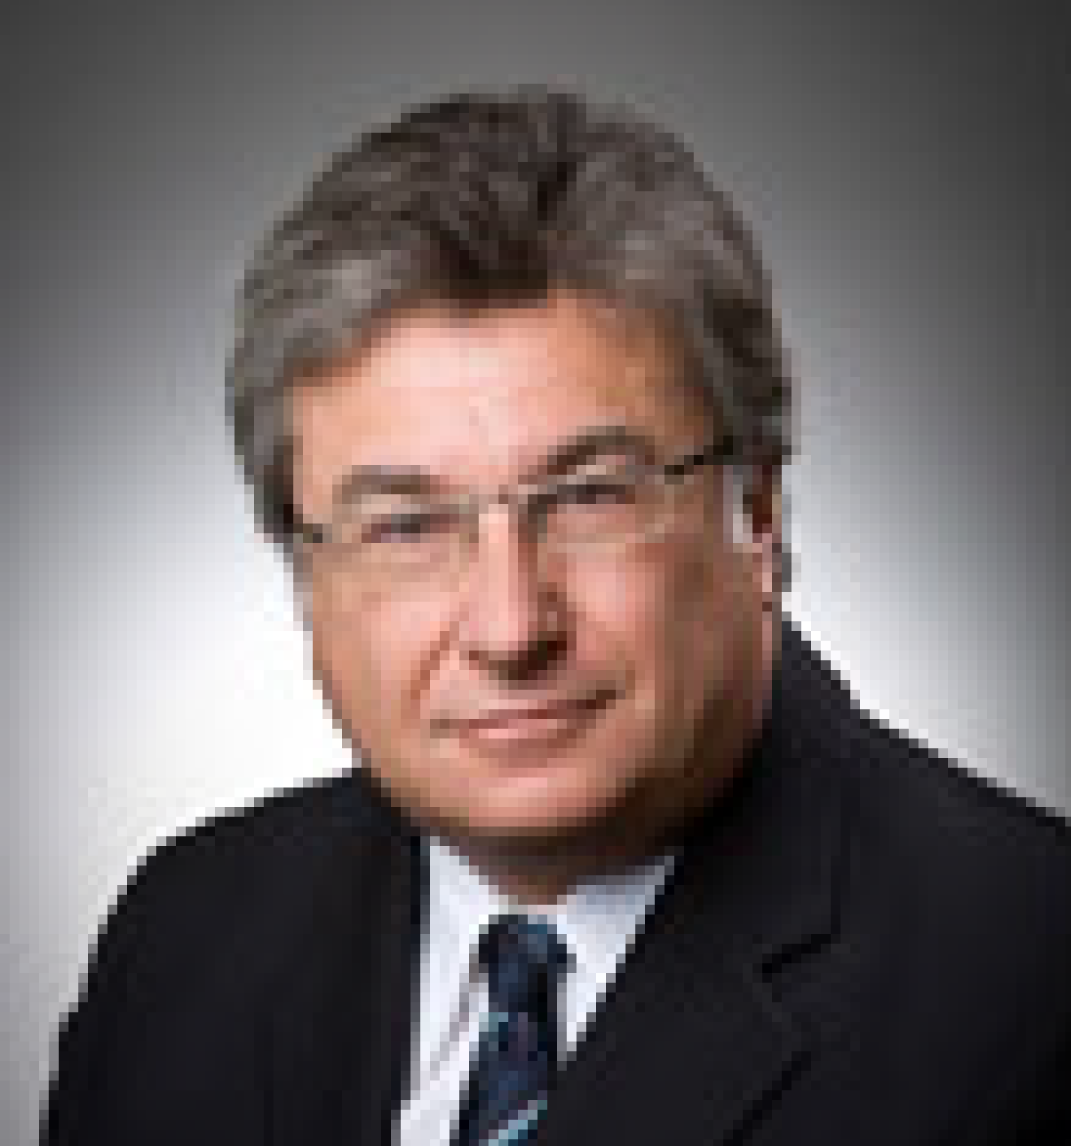 Construction Labour Relations Speaker David P. Jacobs